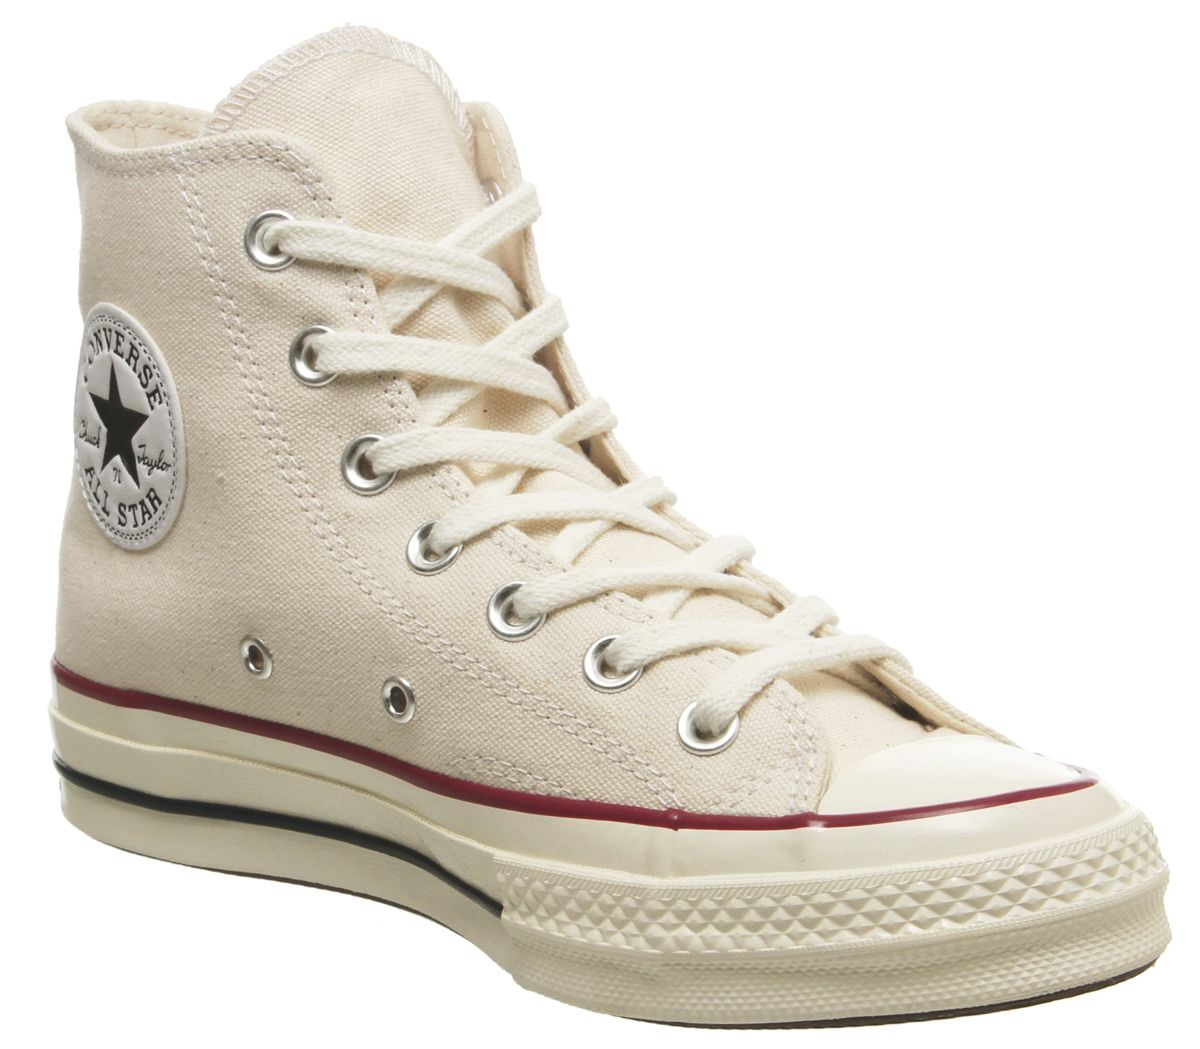 d78551c76c3f Converse All Star Hi 70s Trainers Parchment - His trainers